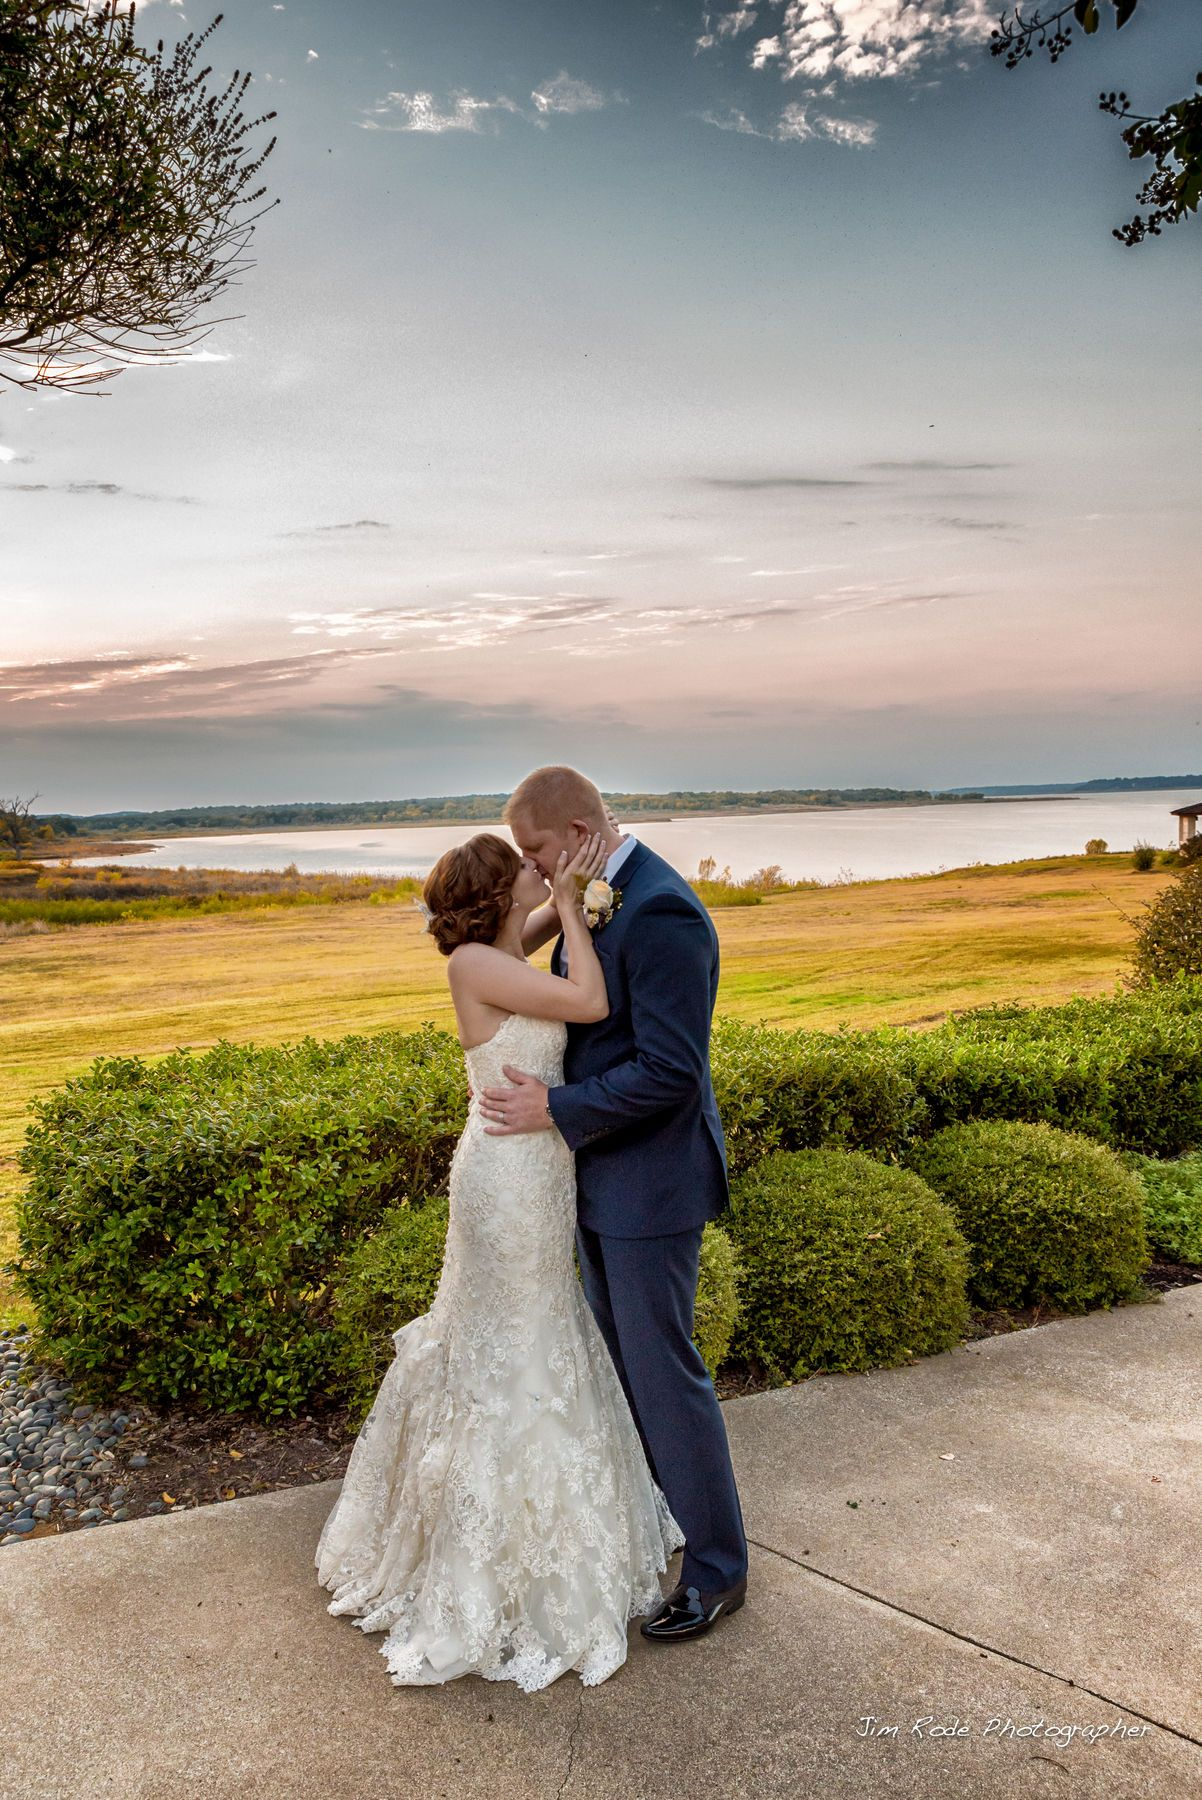 A Short Stop After The Ceremony To Kiss Before The Reception This